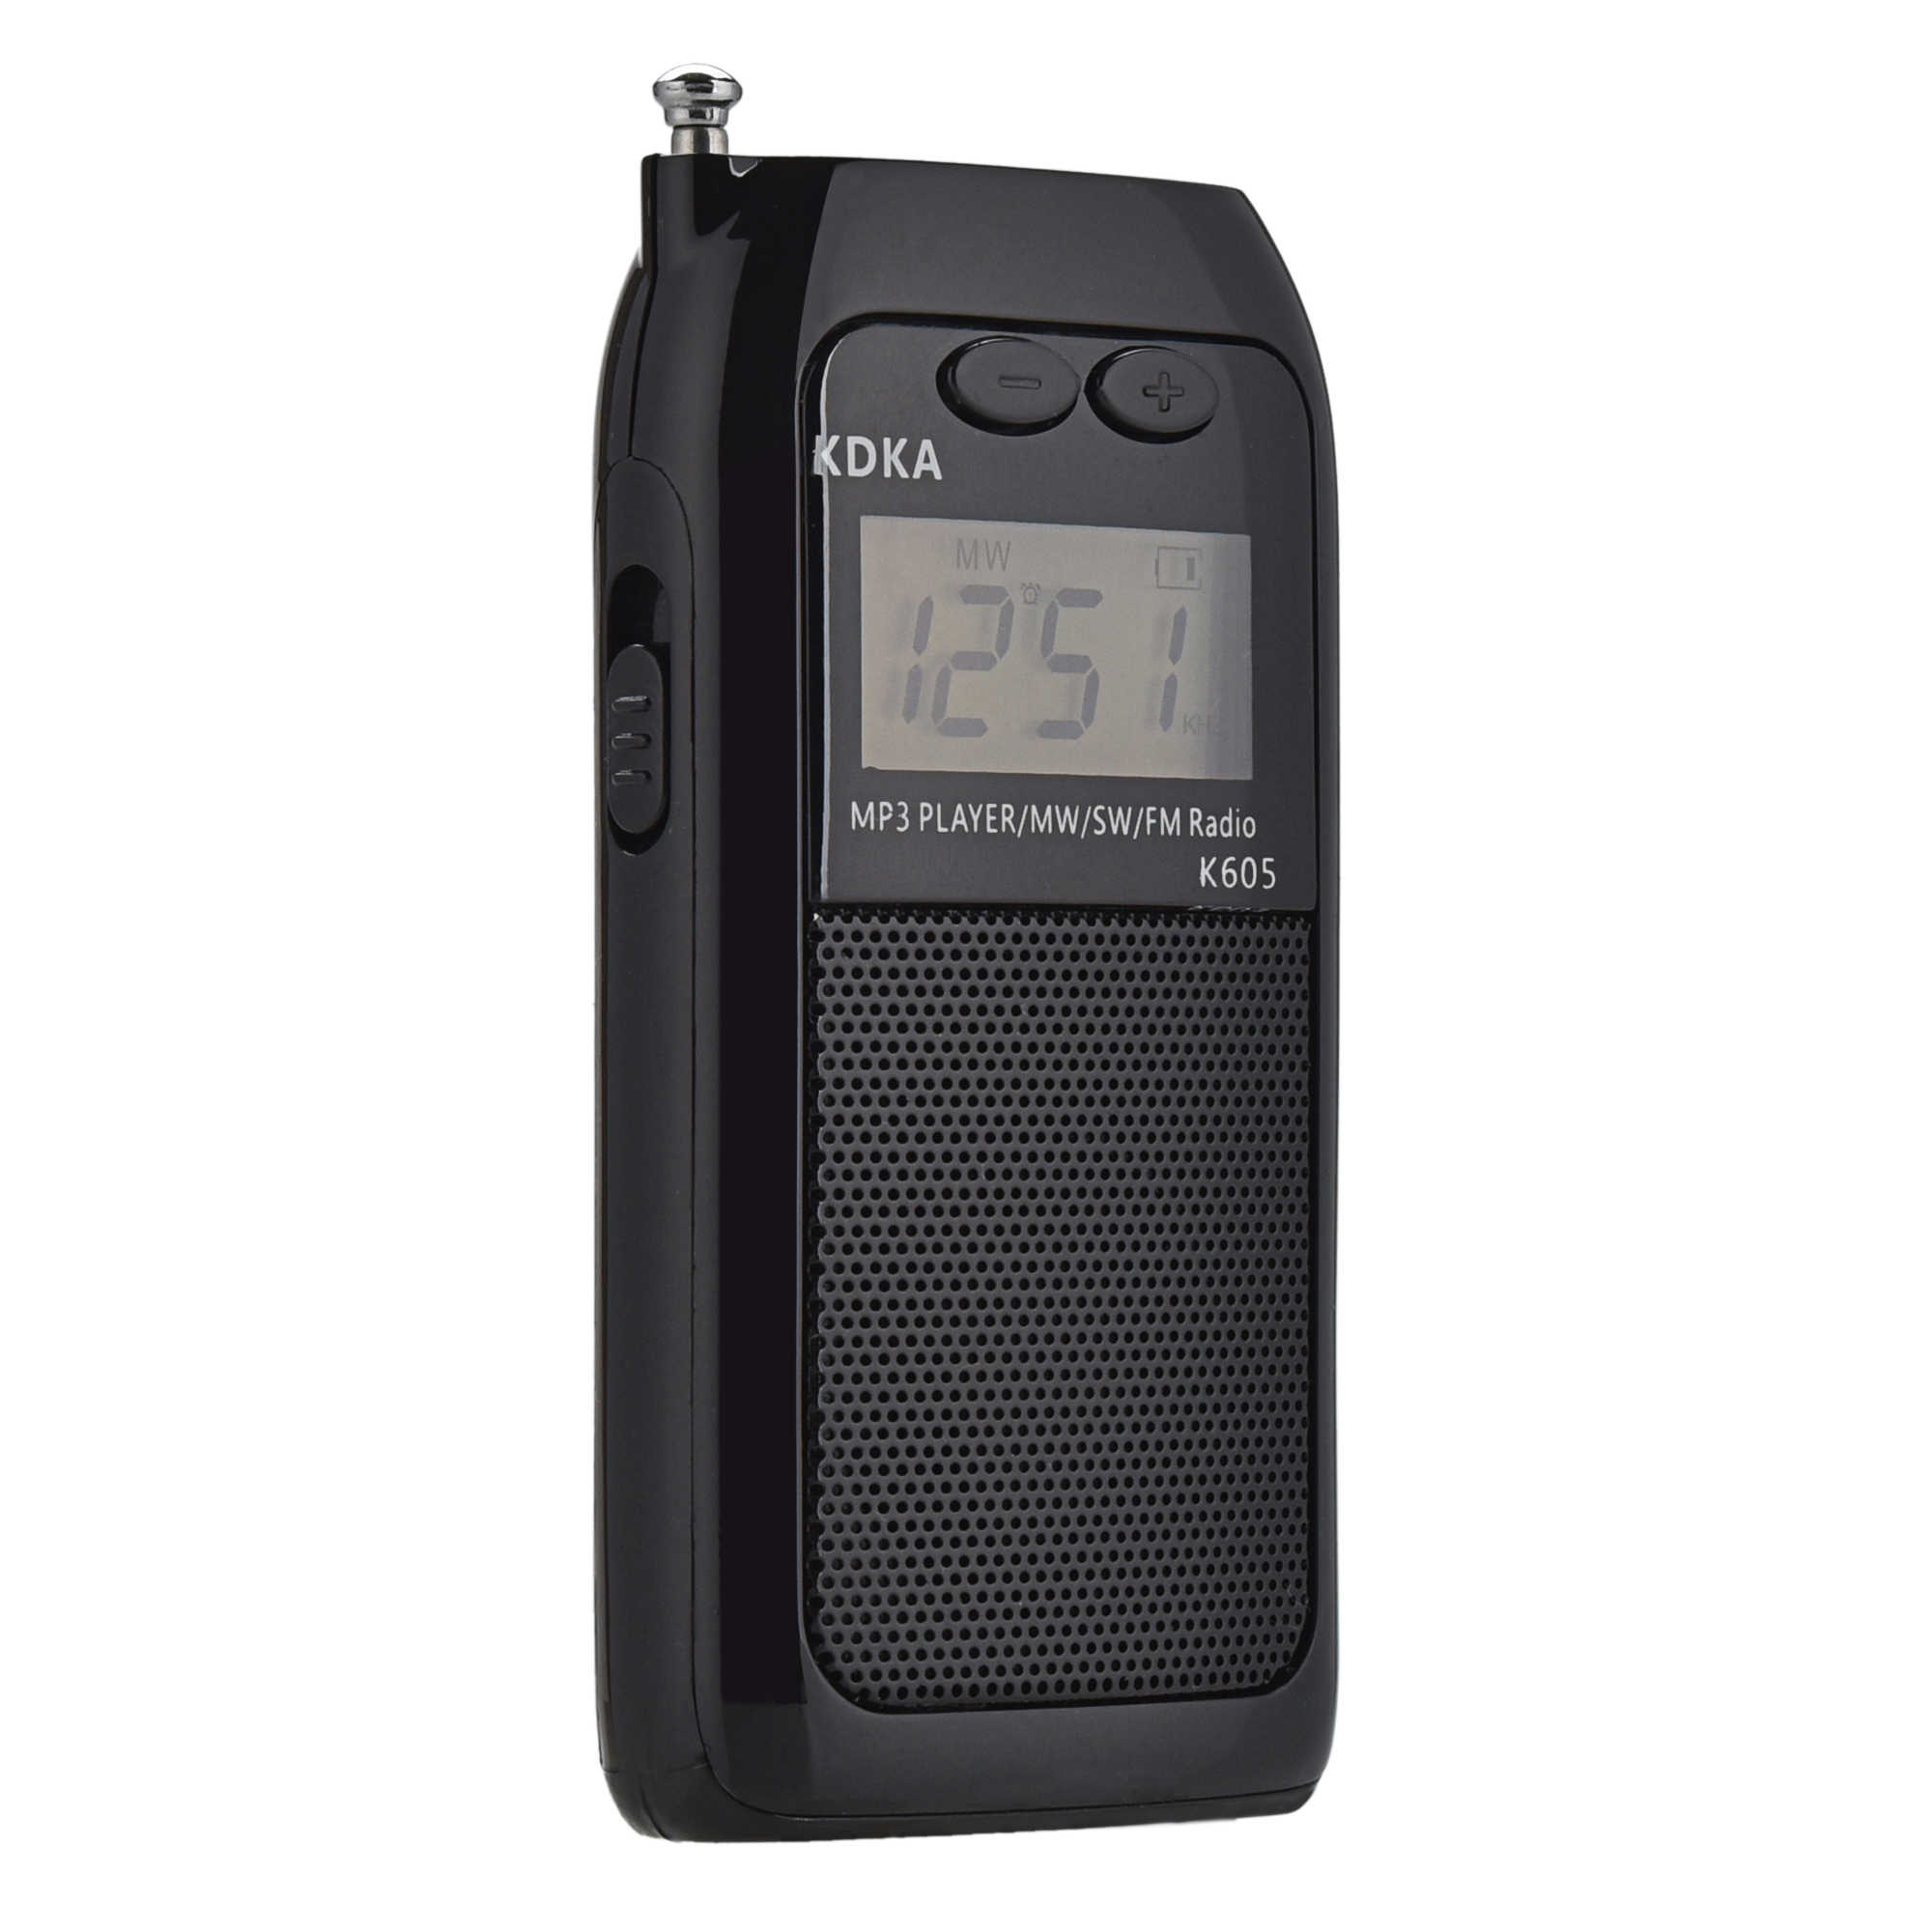 K605 Mini Pocket Radio STEREO FM AM SW MW Sintonia Digitale Ricevitore Radio MP3 Giocatore di Musica Ricaricabile Batteria Radio Portatile